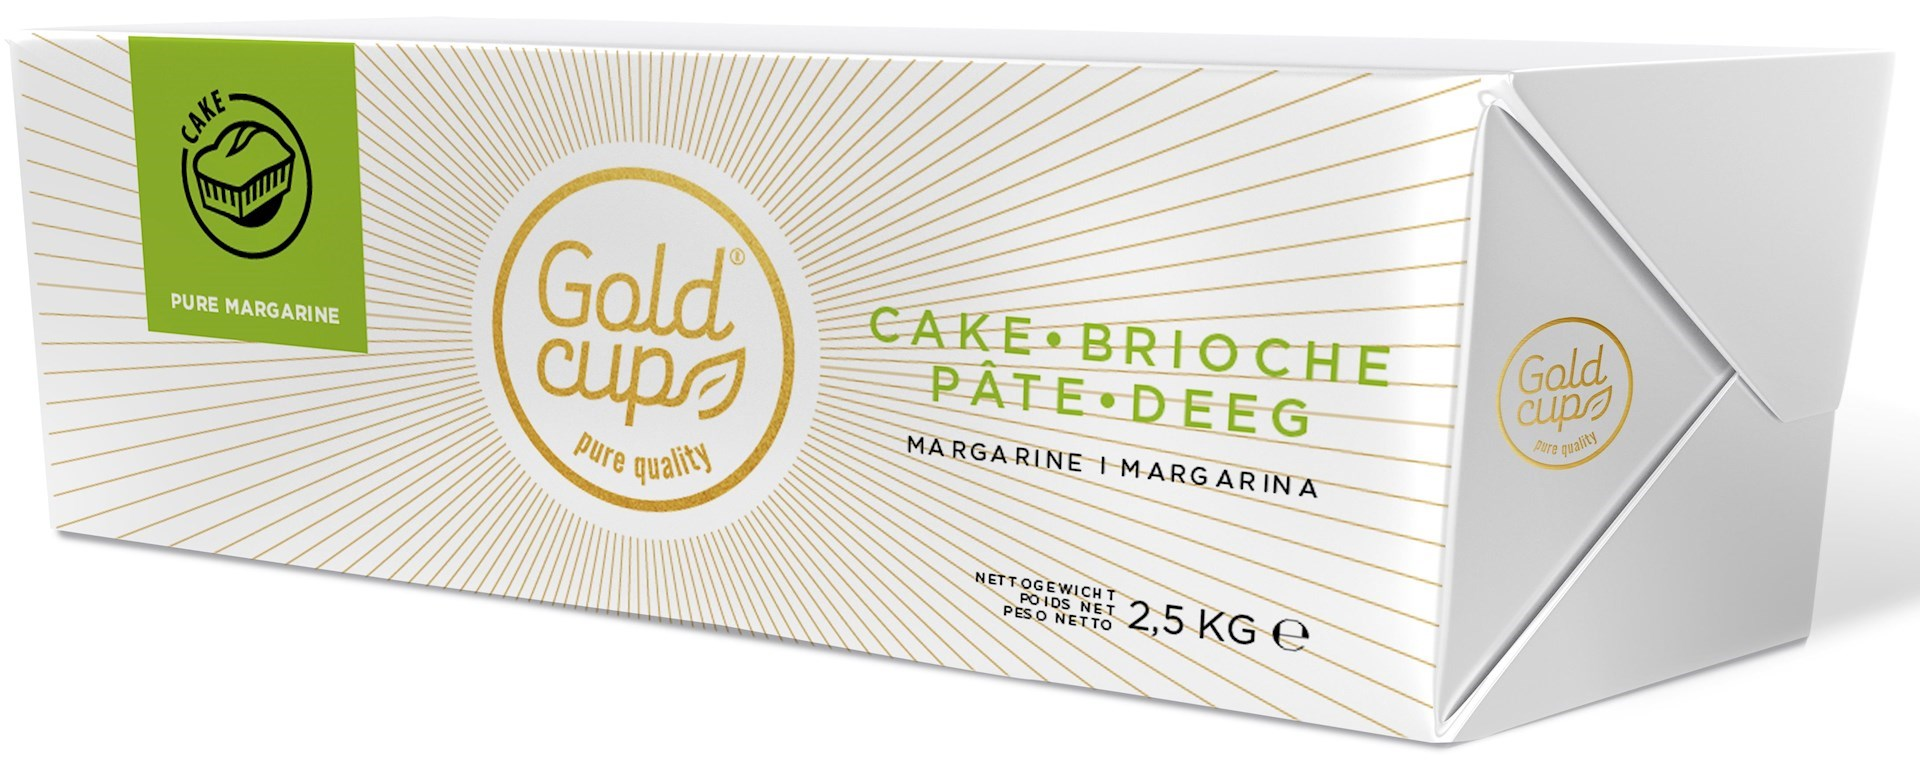 Productafbeelding Cold Cup Cakedeeg margarine Plak